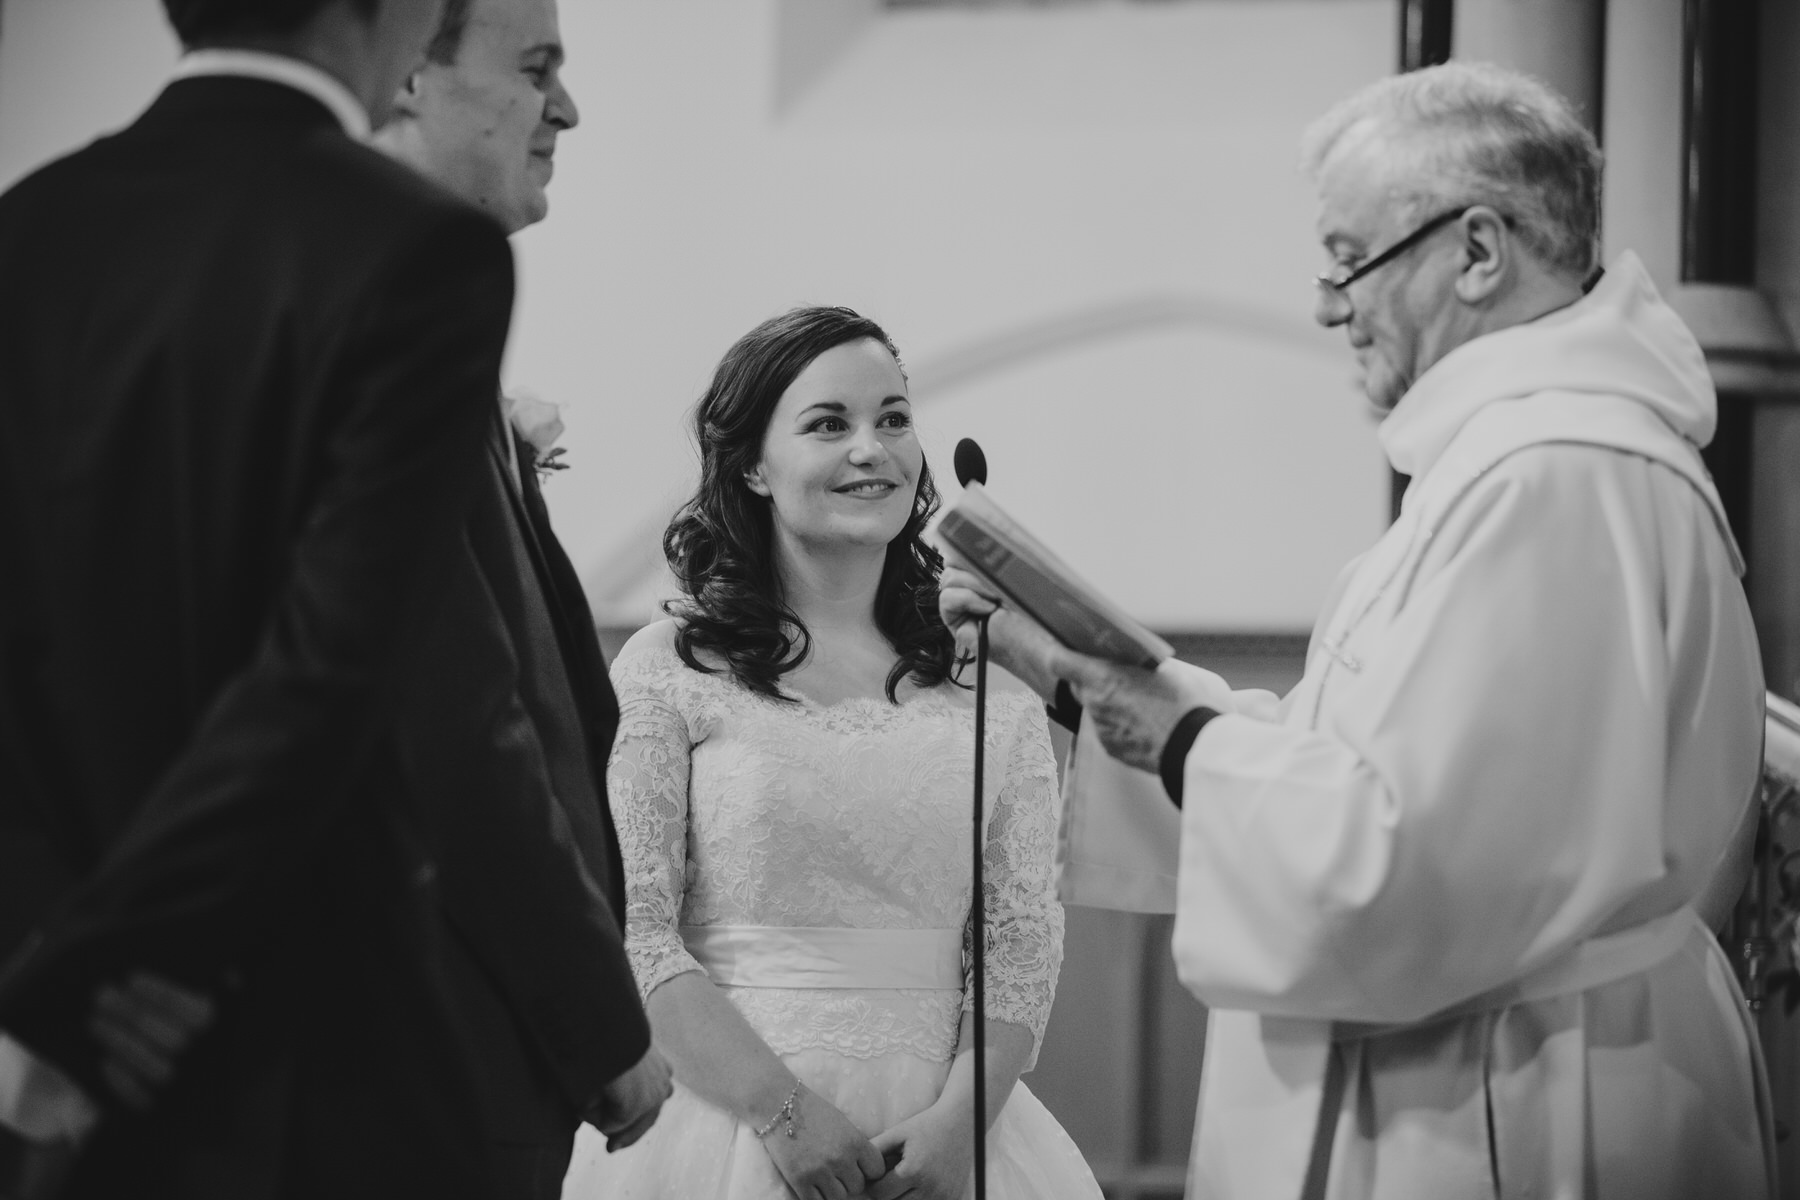 46 Fulham Catholic Church wedding ceremony bride priest.jpg